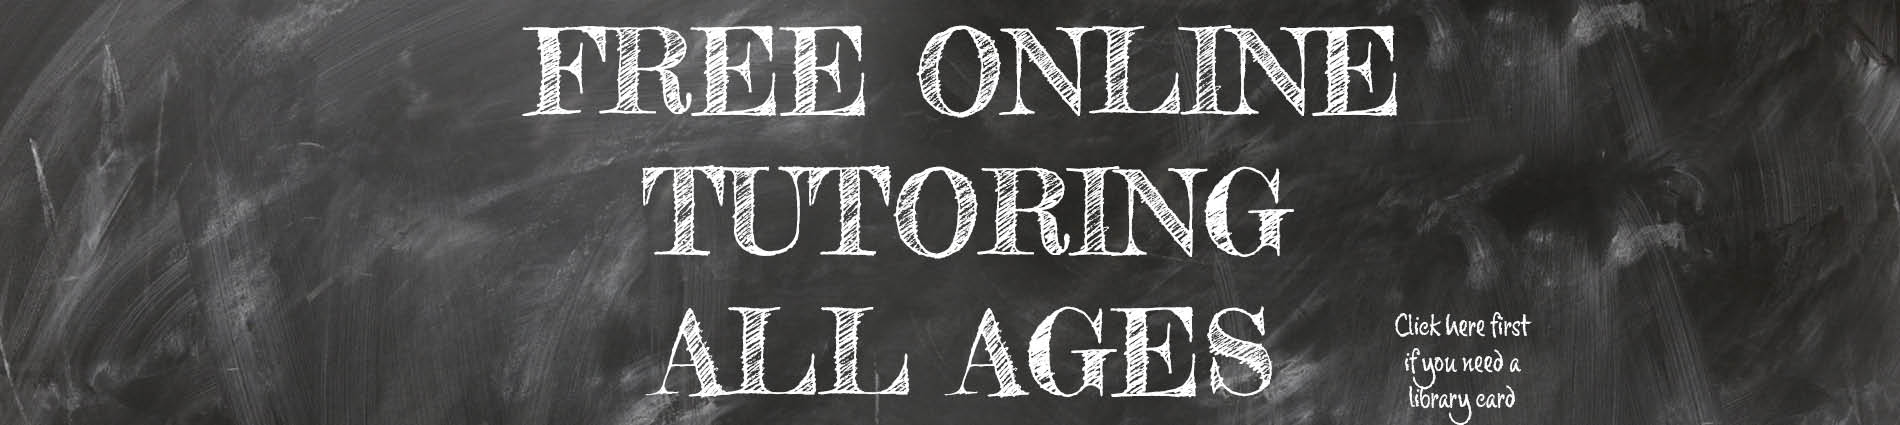 Free online tutoring all ages